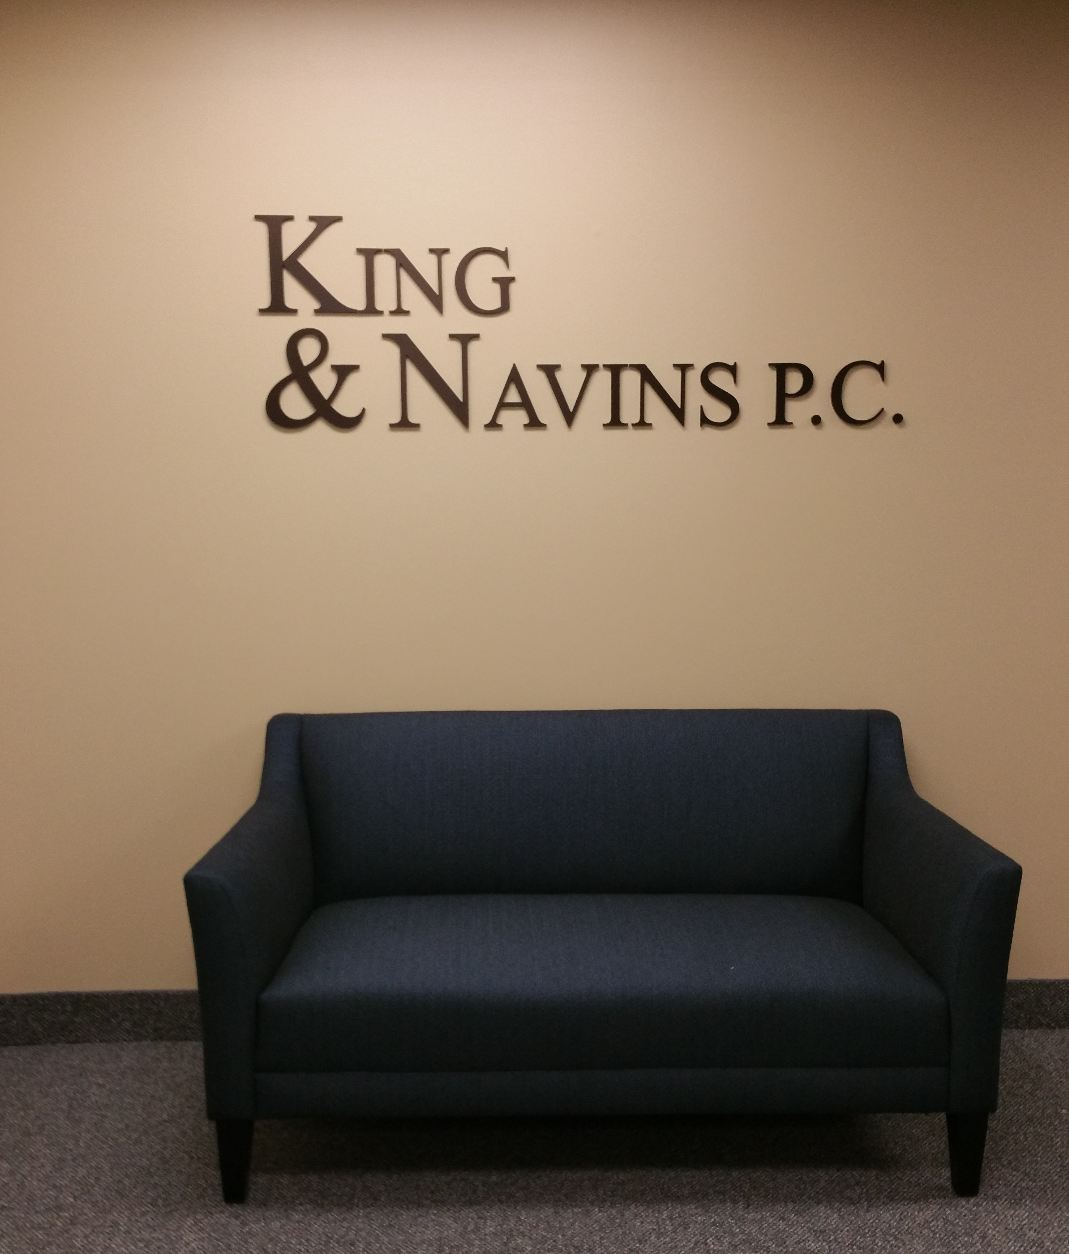 Kings & Navins P.C.